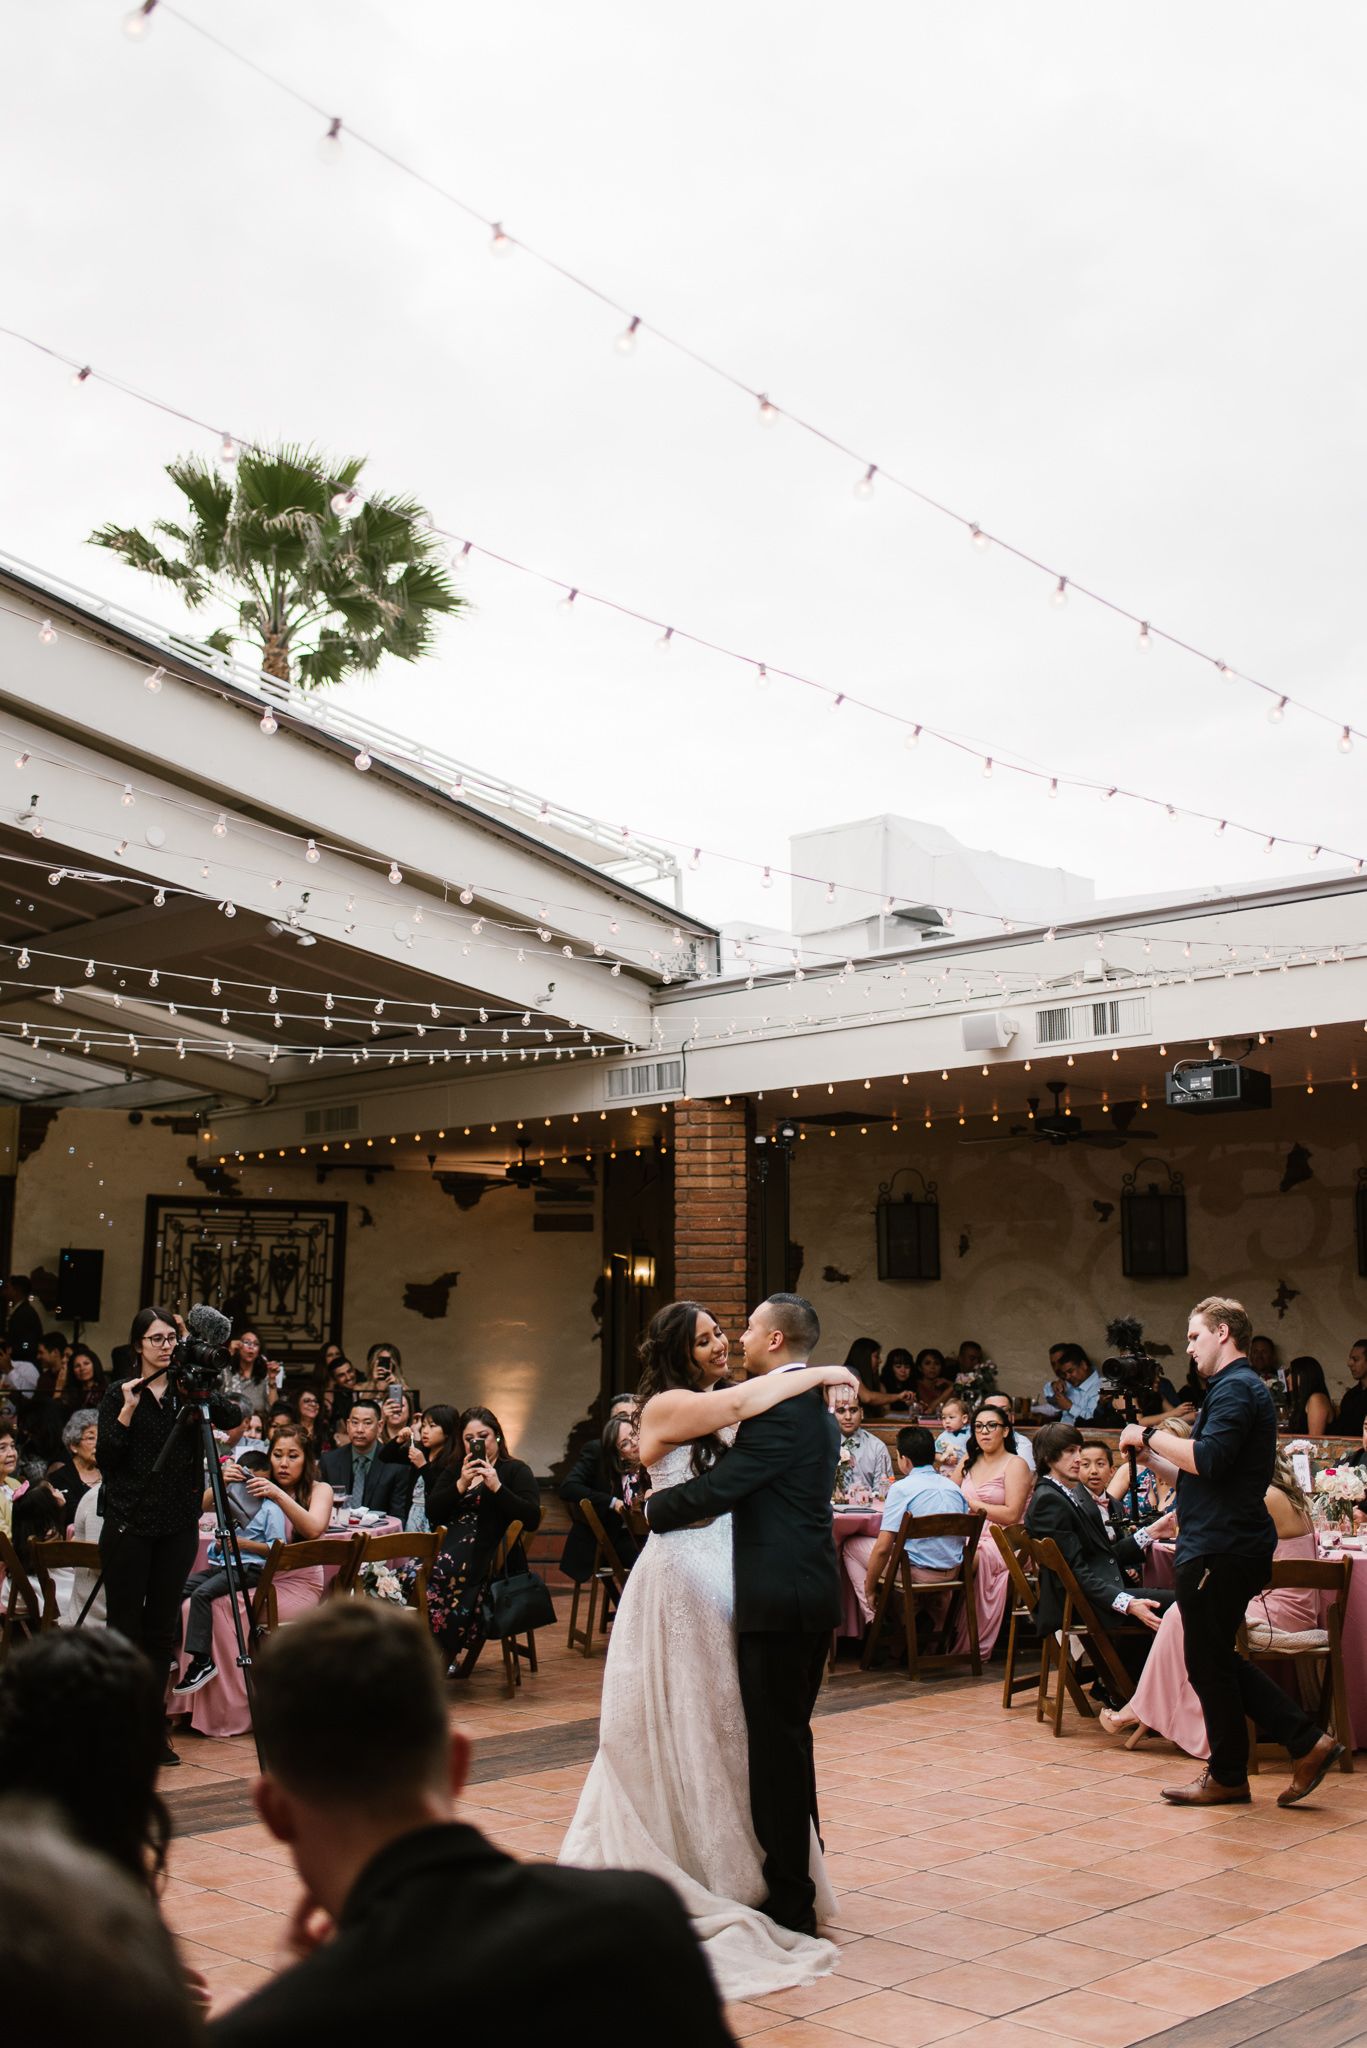 2019-04-05_Brittany_and_Nick_-_Married_-_San_Juan_Capistrano-121.jpg